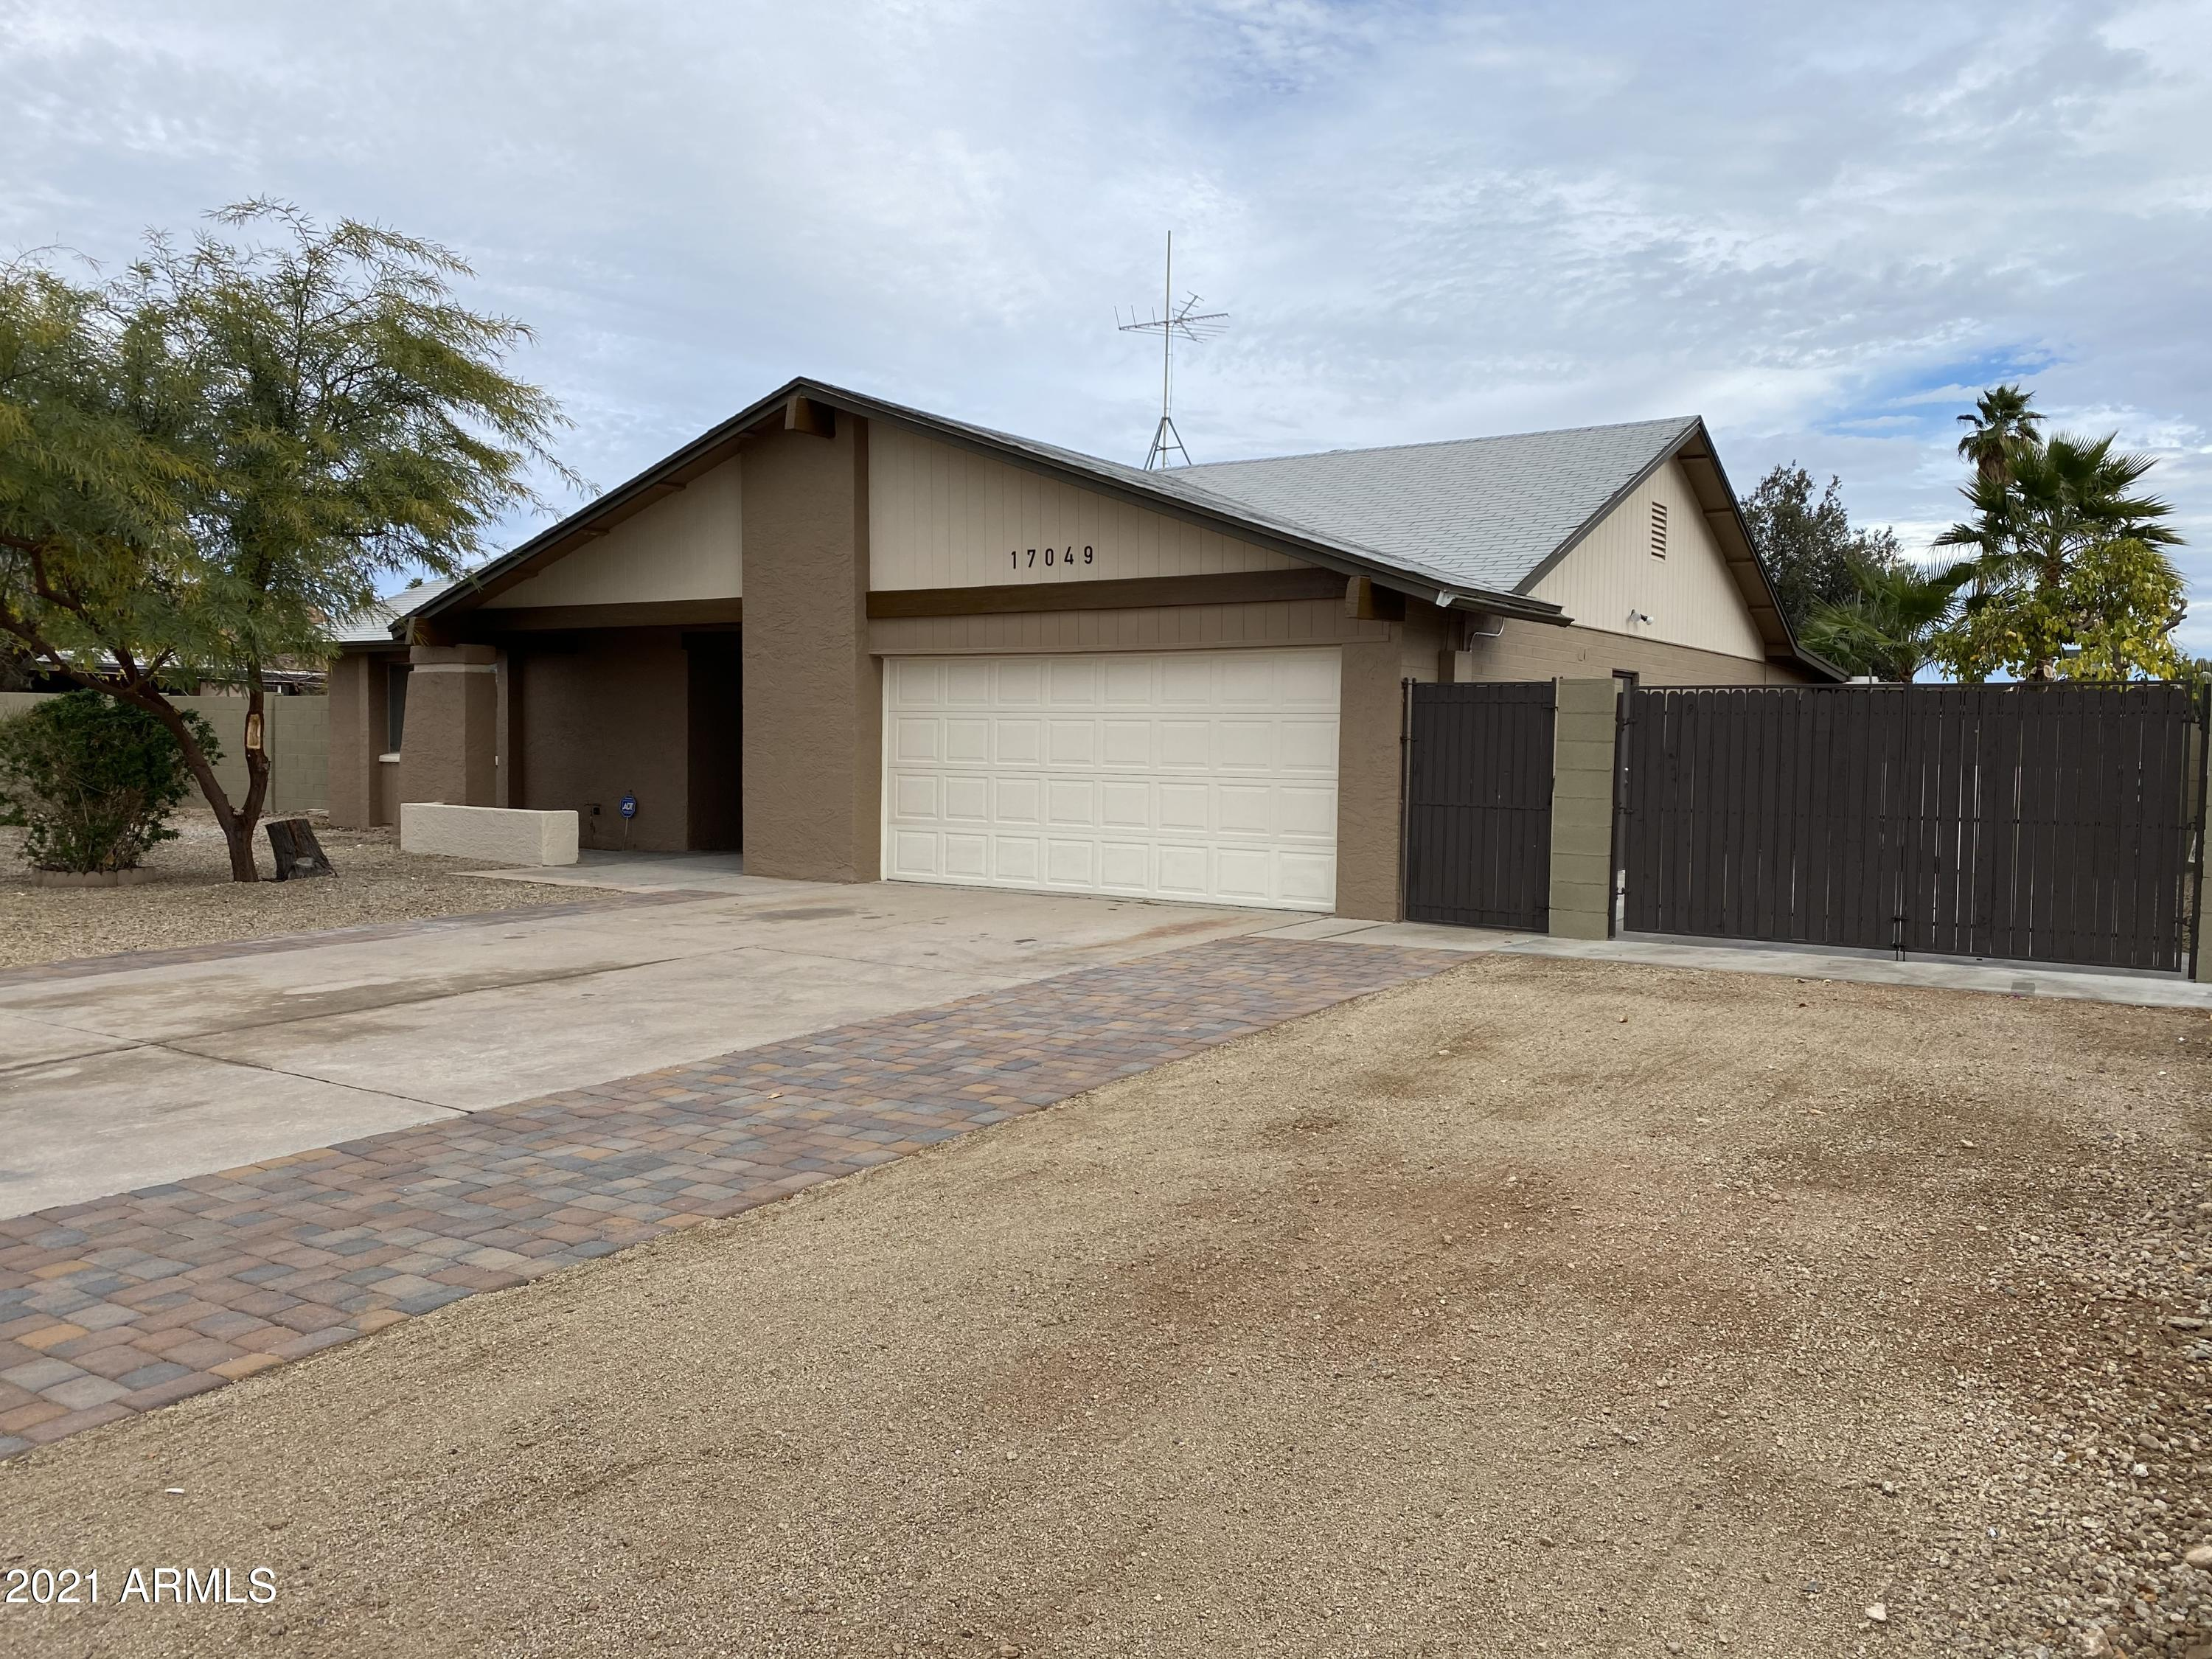 17049 N 39th Avenue, Glendale AZ 85308